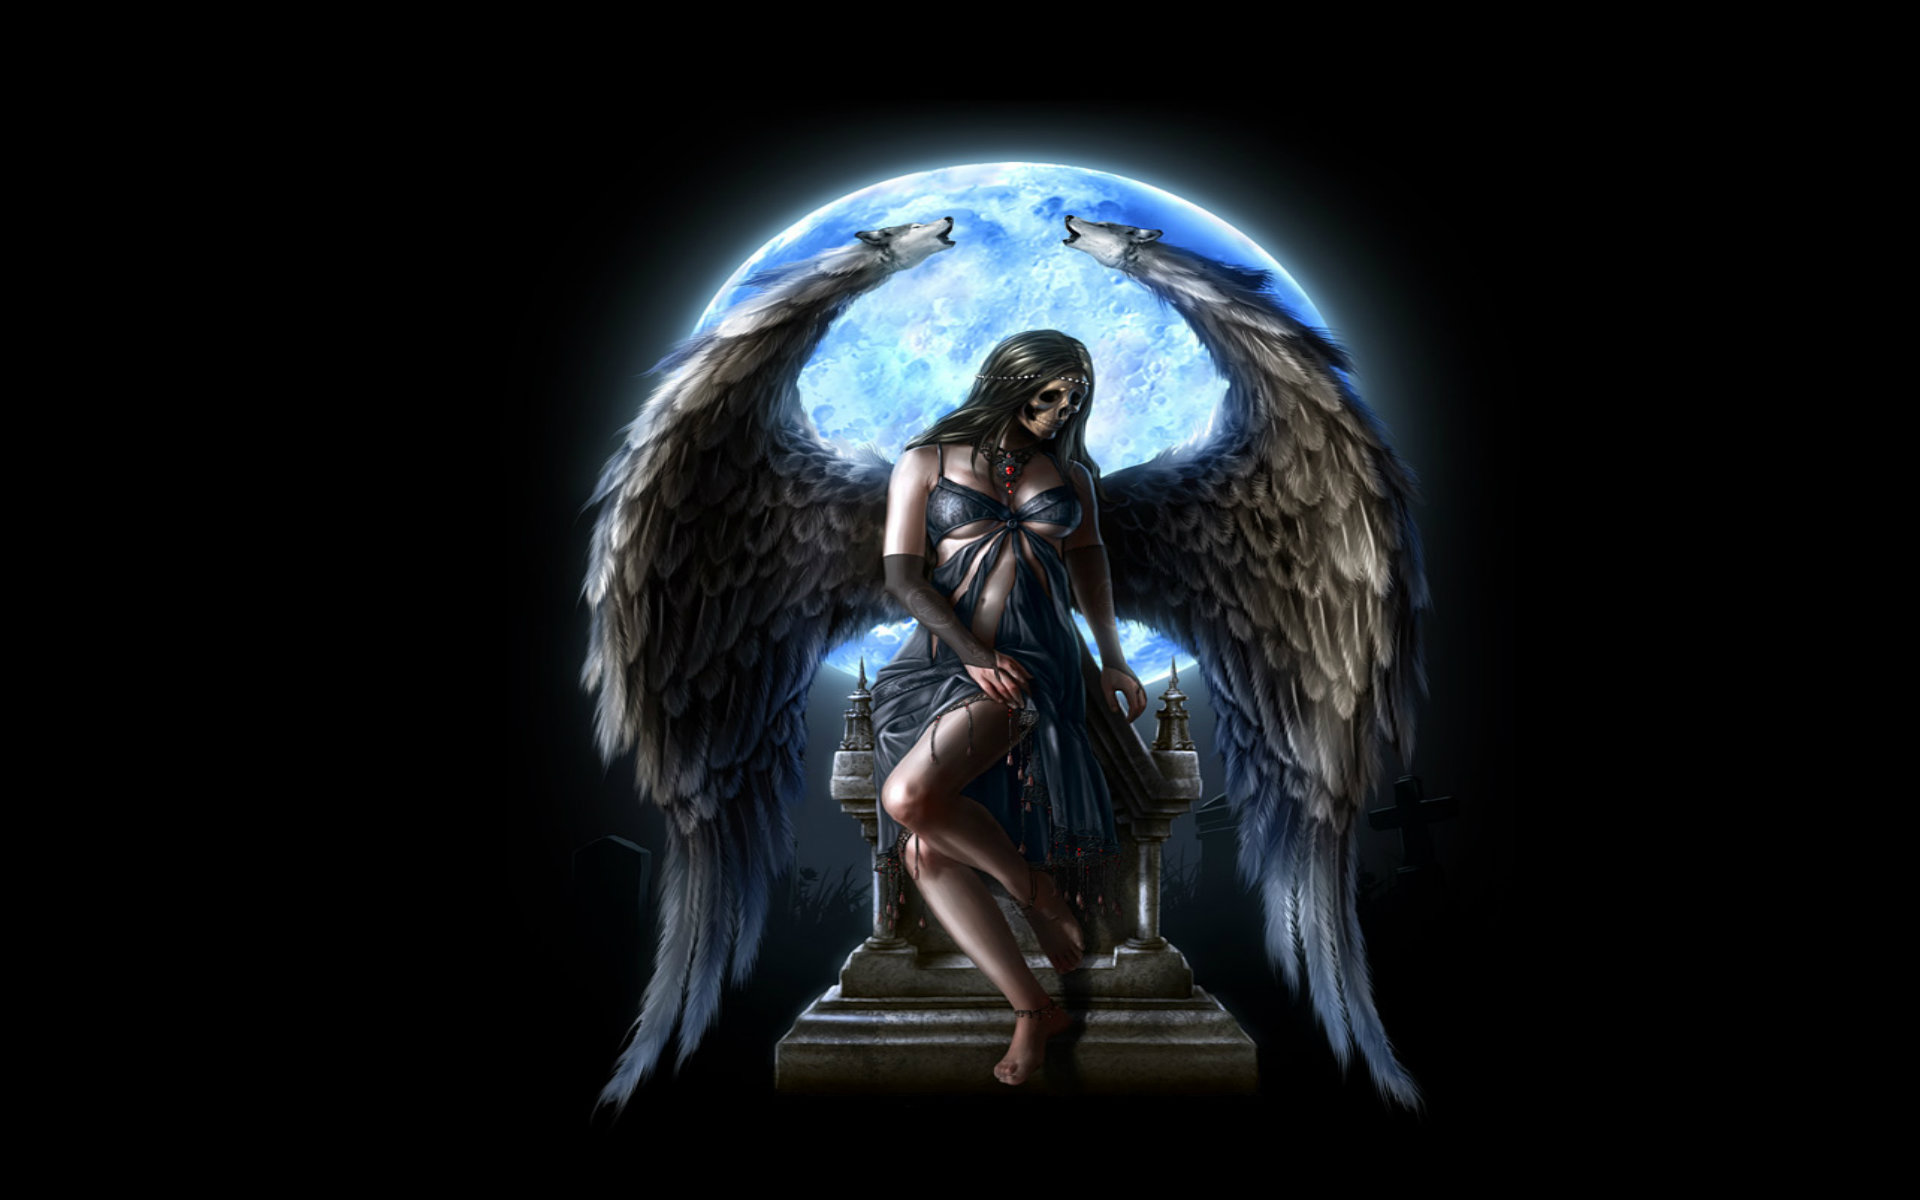 3 Dark Angel 2 Skull Black Gothic Wings Moon Hd Wallpaper 617